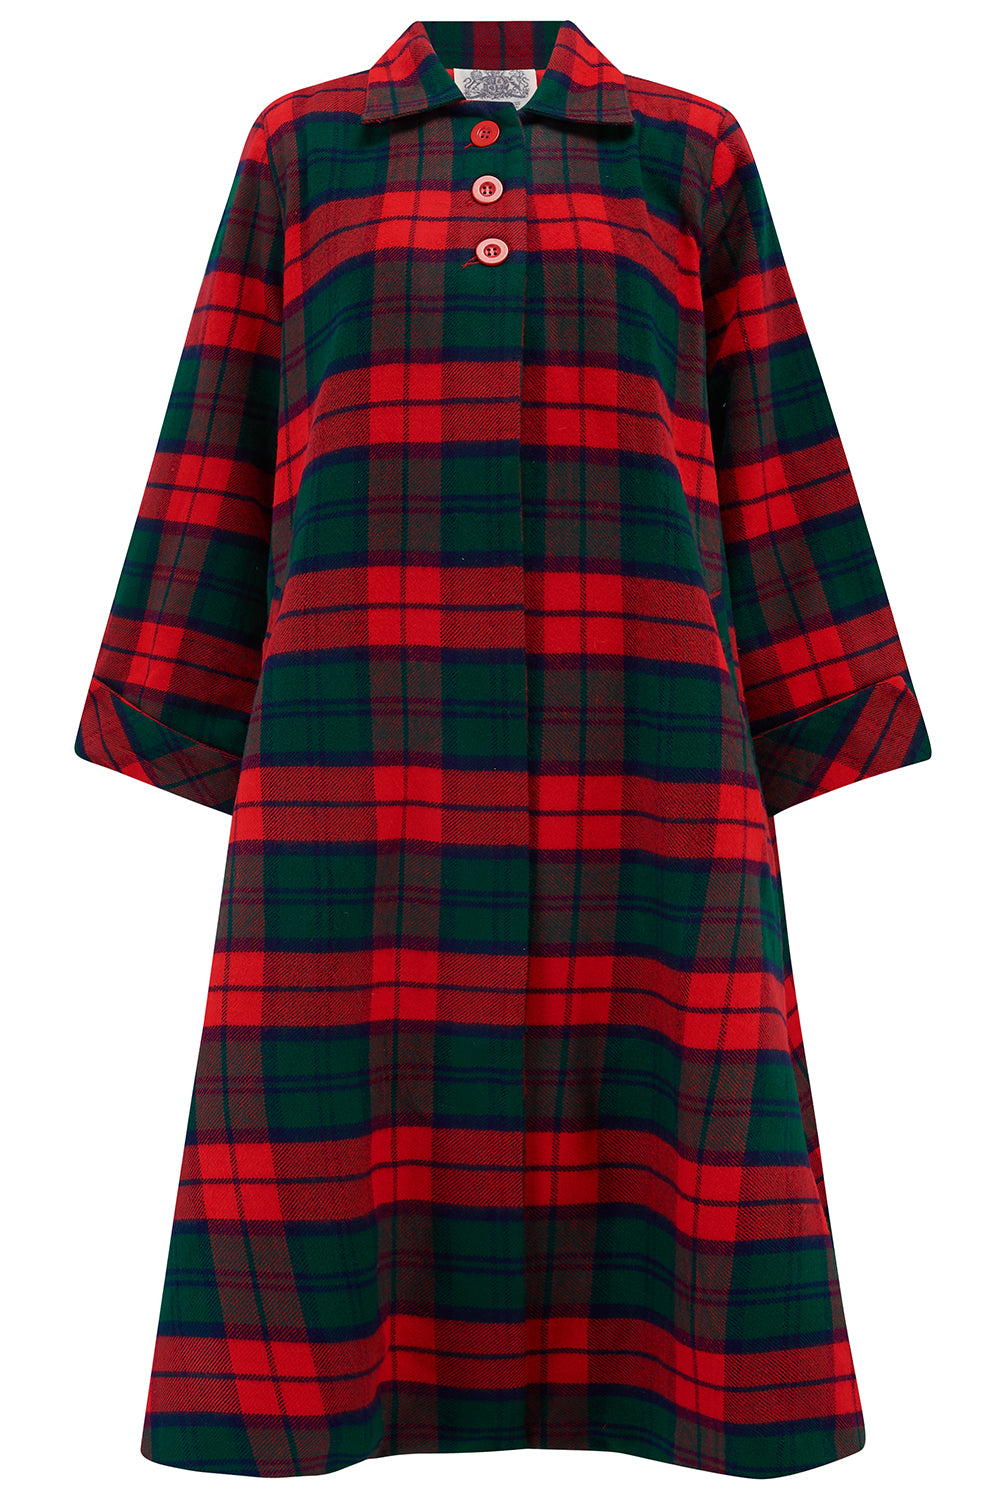 1940s Coats & Jackets Fashion History Swing Coat in Tradition Red  Green Tartan check Vintage 1940s Cape Style Inspired Over Coat £165.00 AT vintagedancer.com